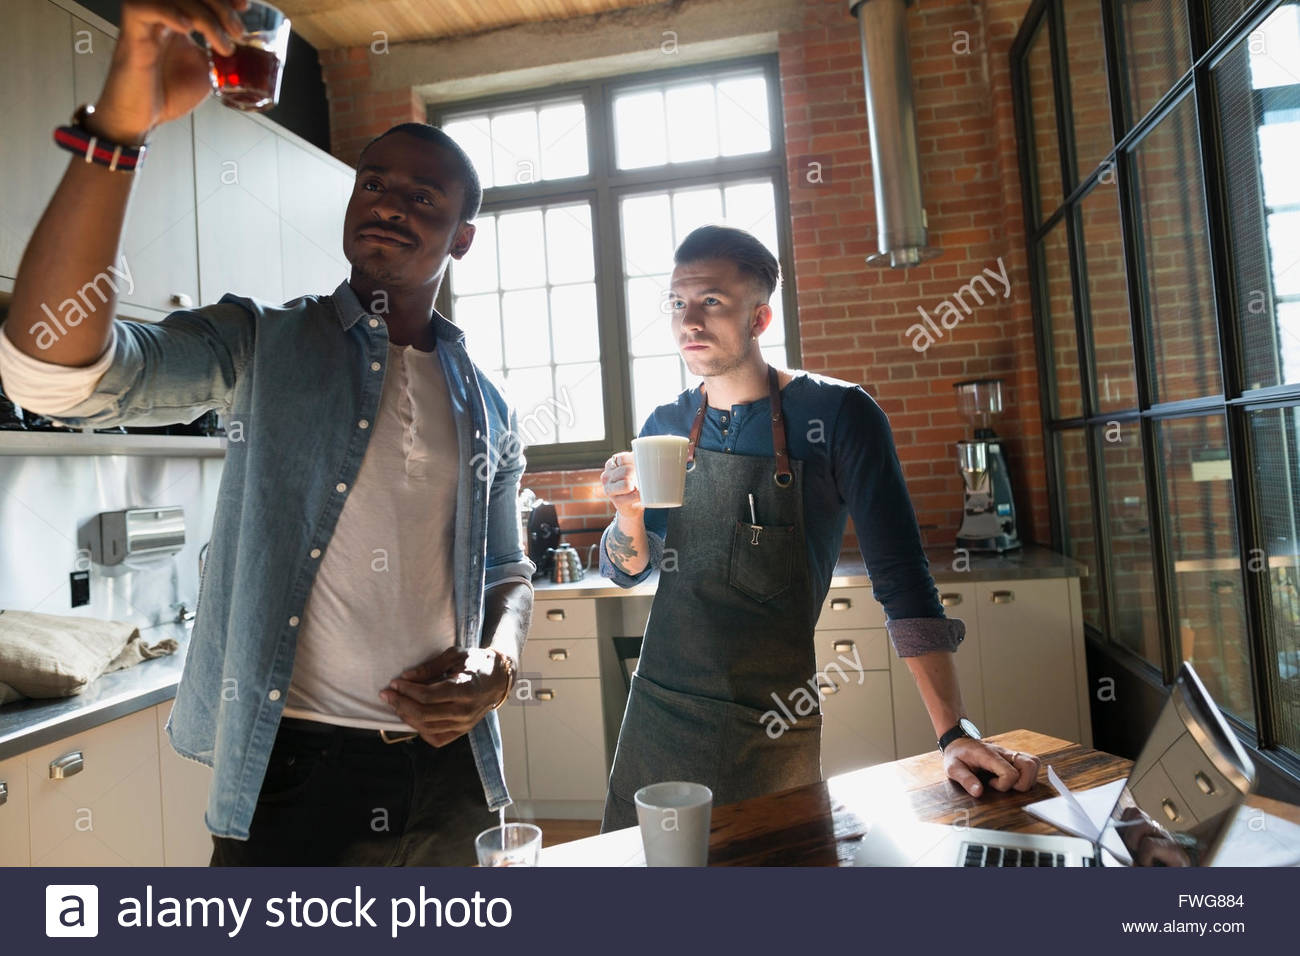 Entrepreneurial coffee roasters examining coffee in kitchen - Stock Image